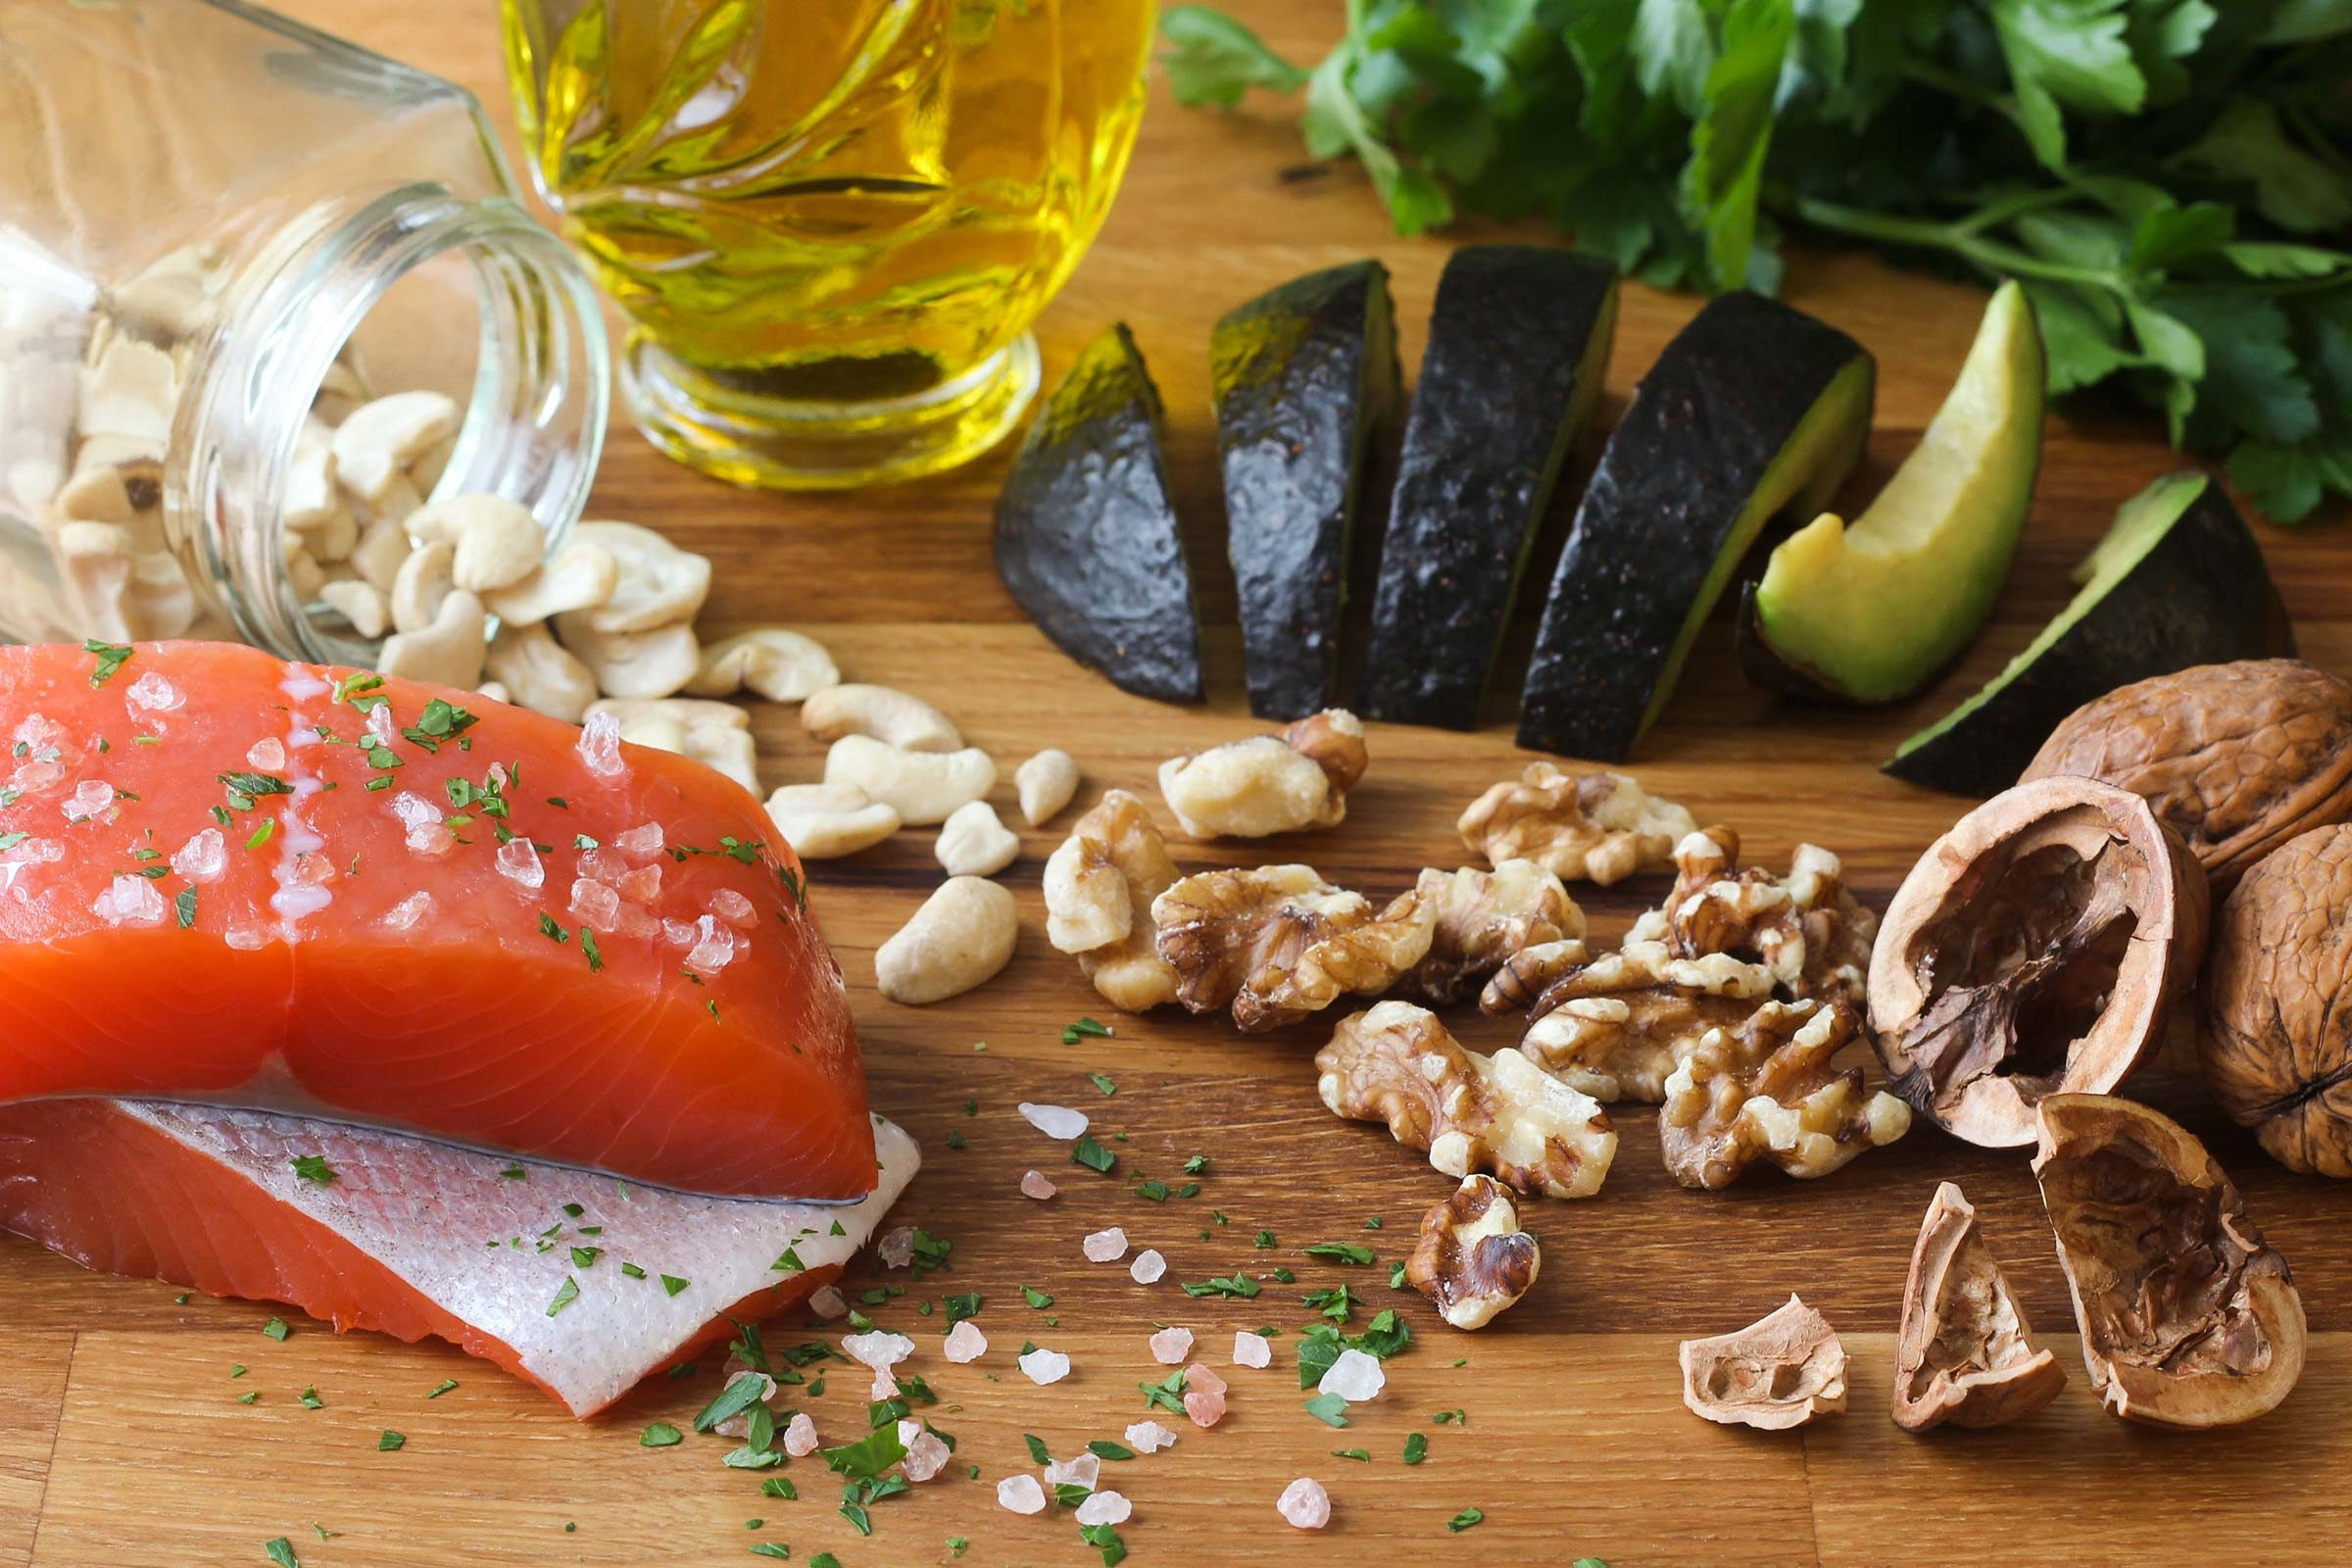 Understand The Components Of A Mediterranean Diet